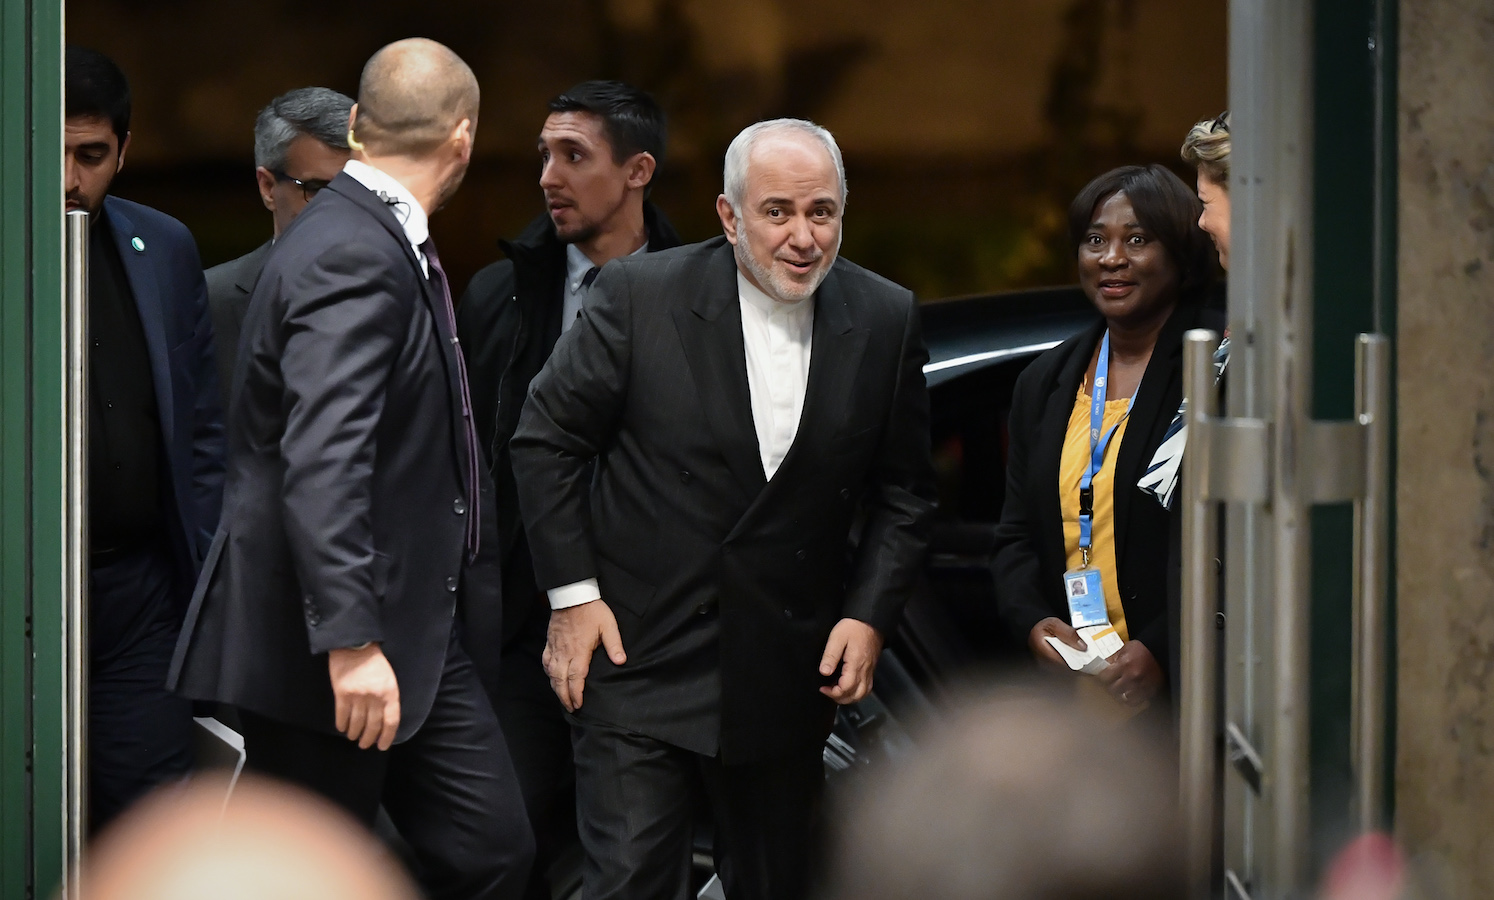 The Trump administration is barring Iran's top diplomat from entering the United States this week to address the United Nations Security Council about the U.S. assassination of Iran's top military official in Baghdad, violating the terms of a 1947 headquarters agreement .